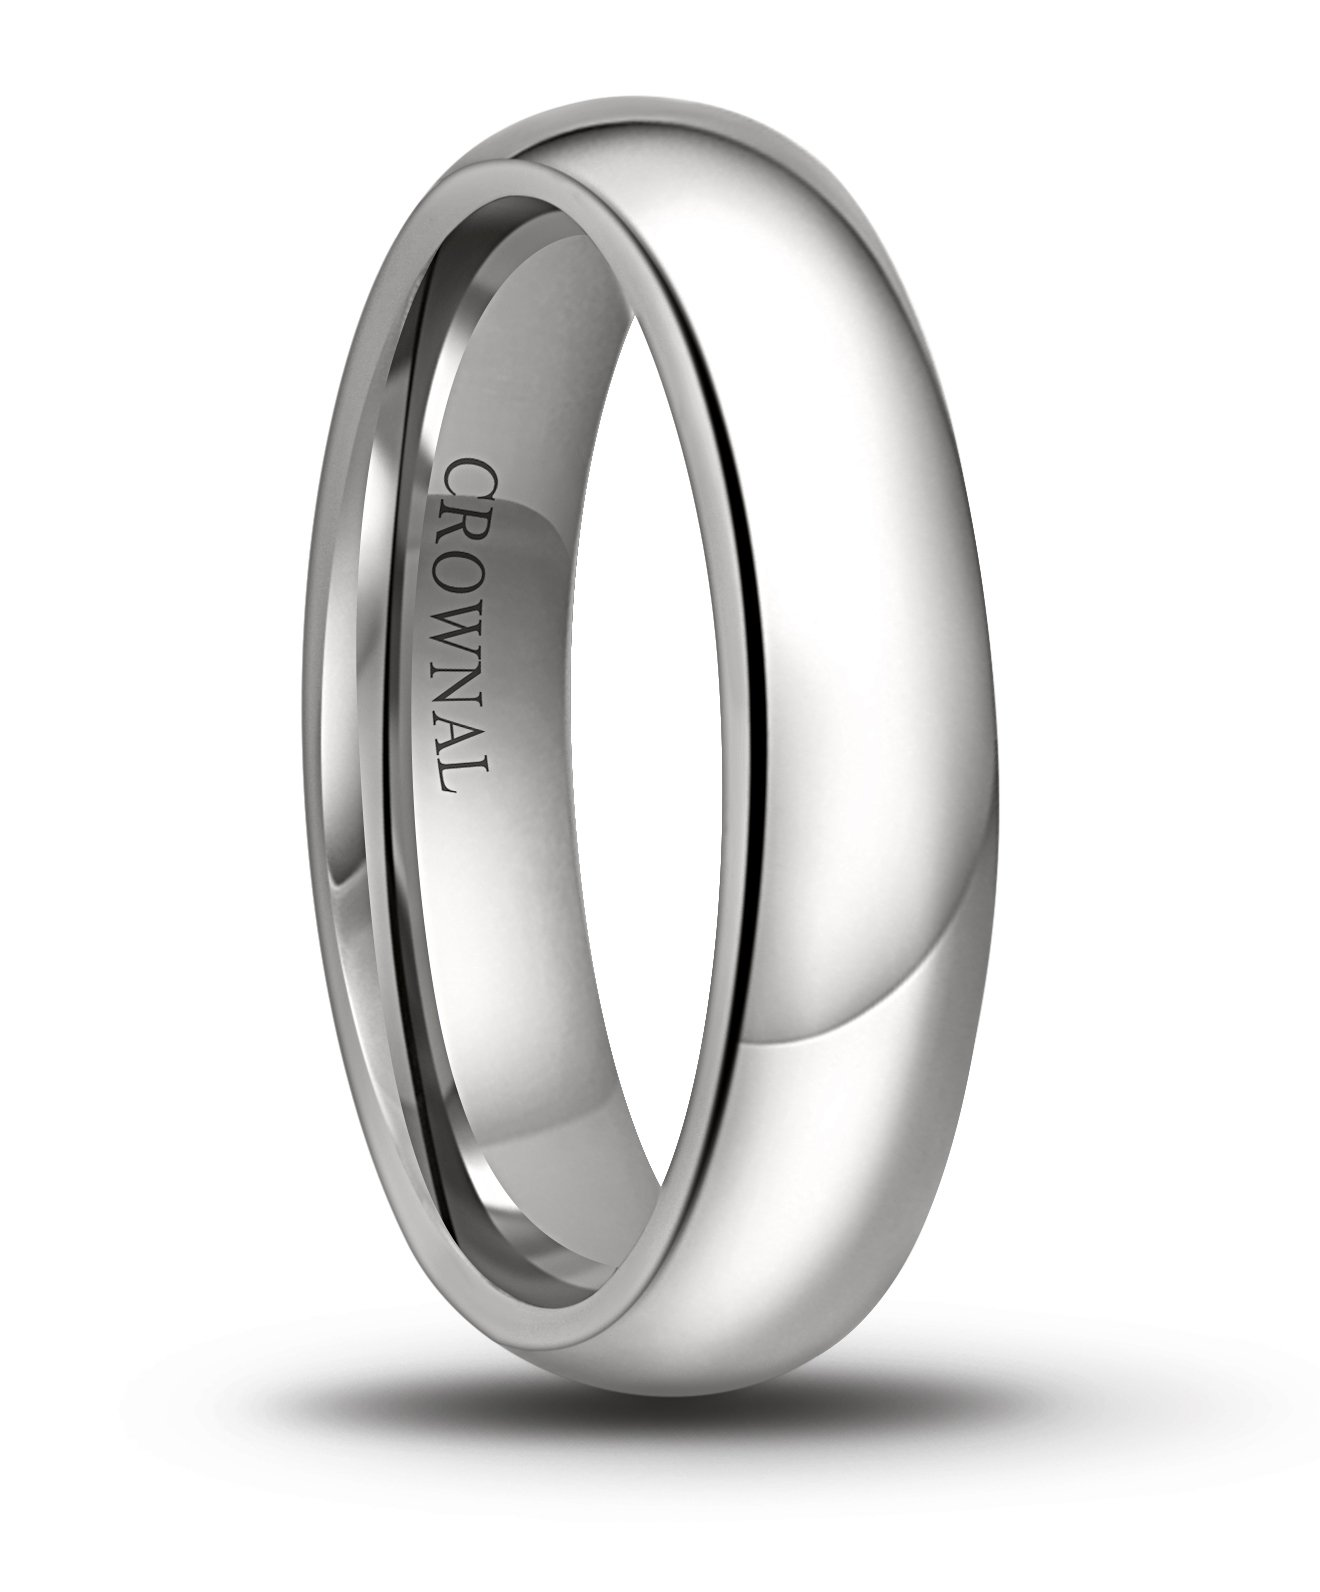 Crownal 6mm/5mm/4mm/3mm/2mm White Tungsten Carbide Polished Classic Dome Wedding Ring All Sizes (5mm, 8.5)